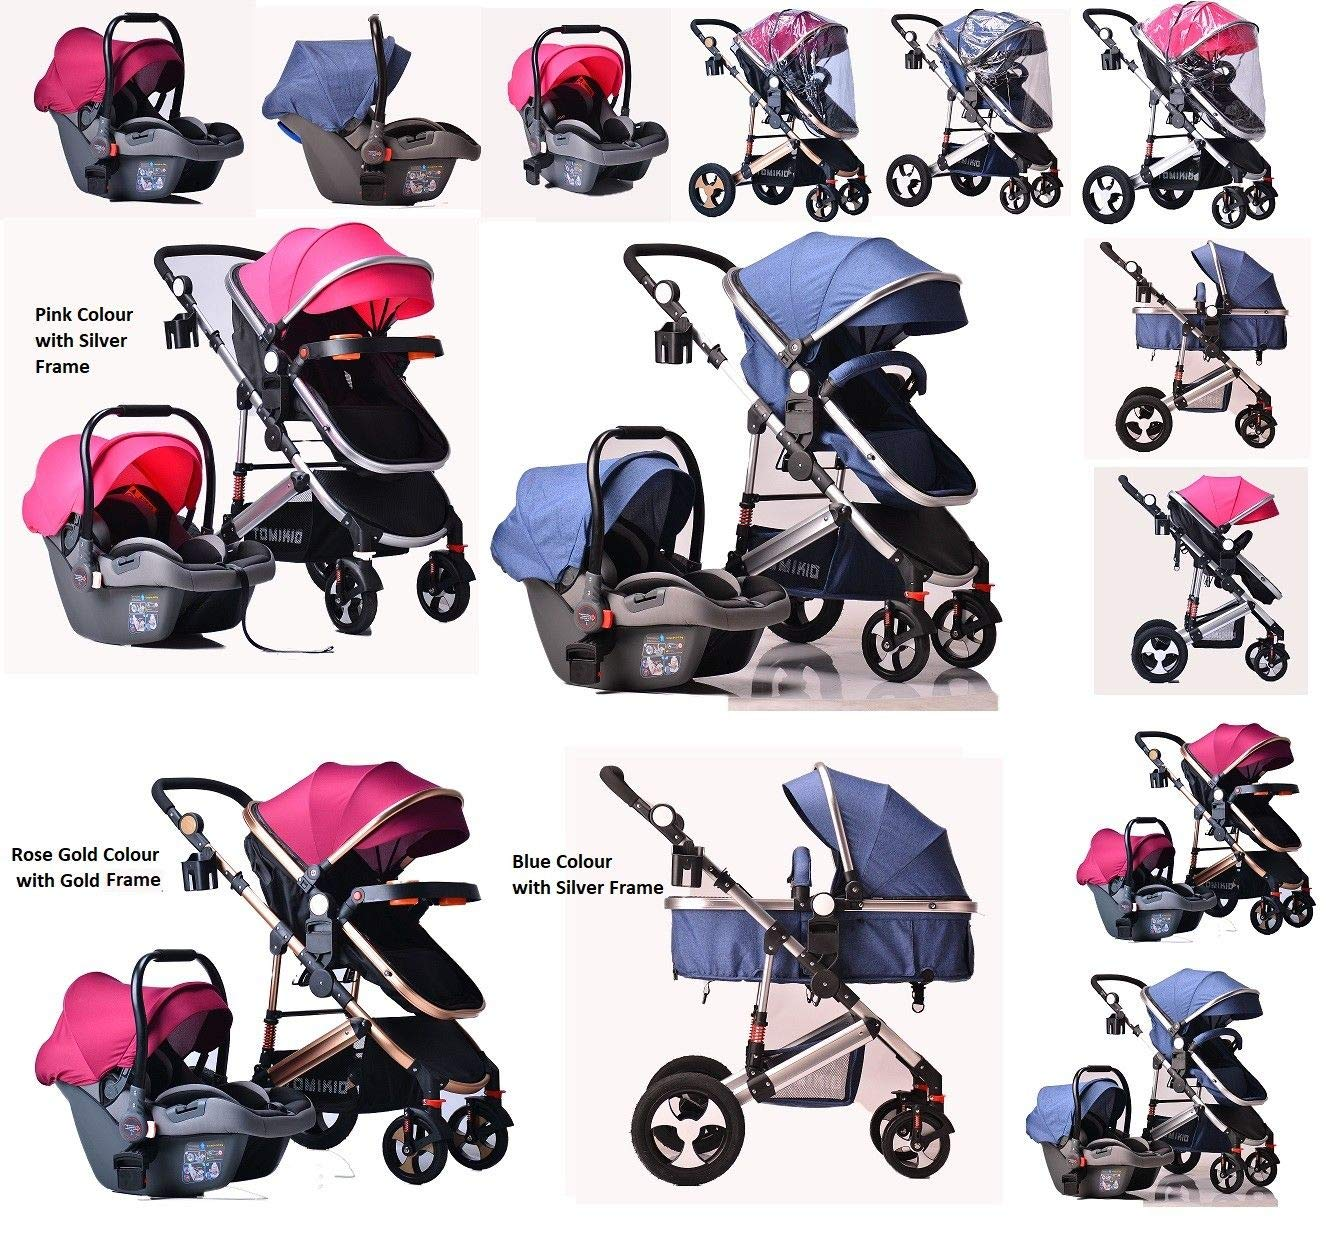 red Pram Travel System 3 in 1 Combi Stroller Buggy Baby Child Pushchair Reverse or Forward Facing Rain Cover Mosquito Net Bottle Holder Foldable with FootMuff Wine Red with Gold Frame